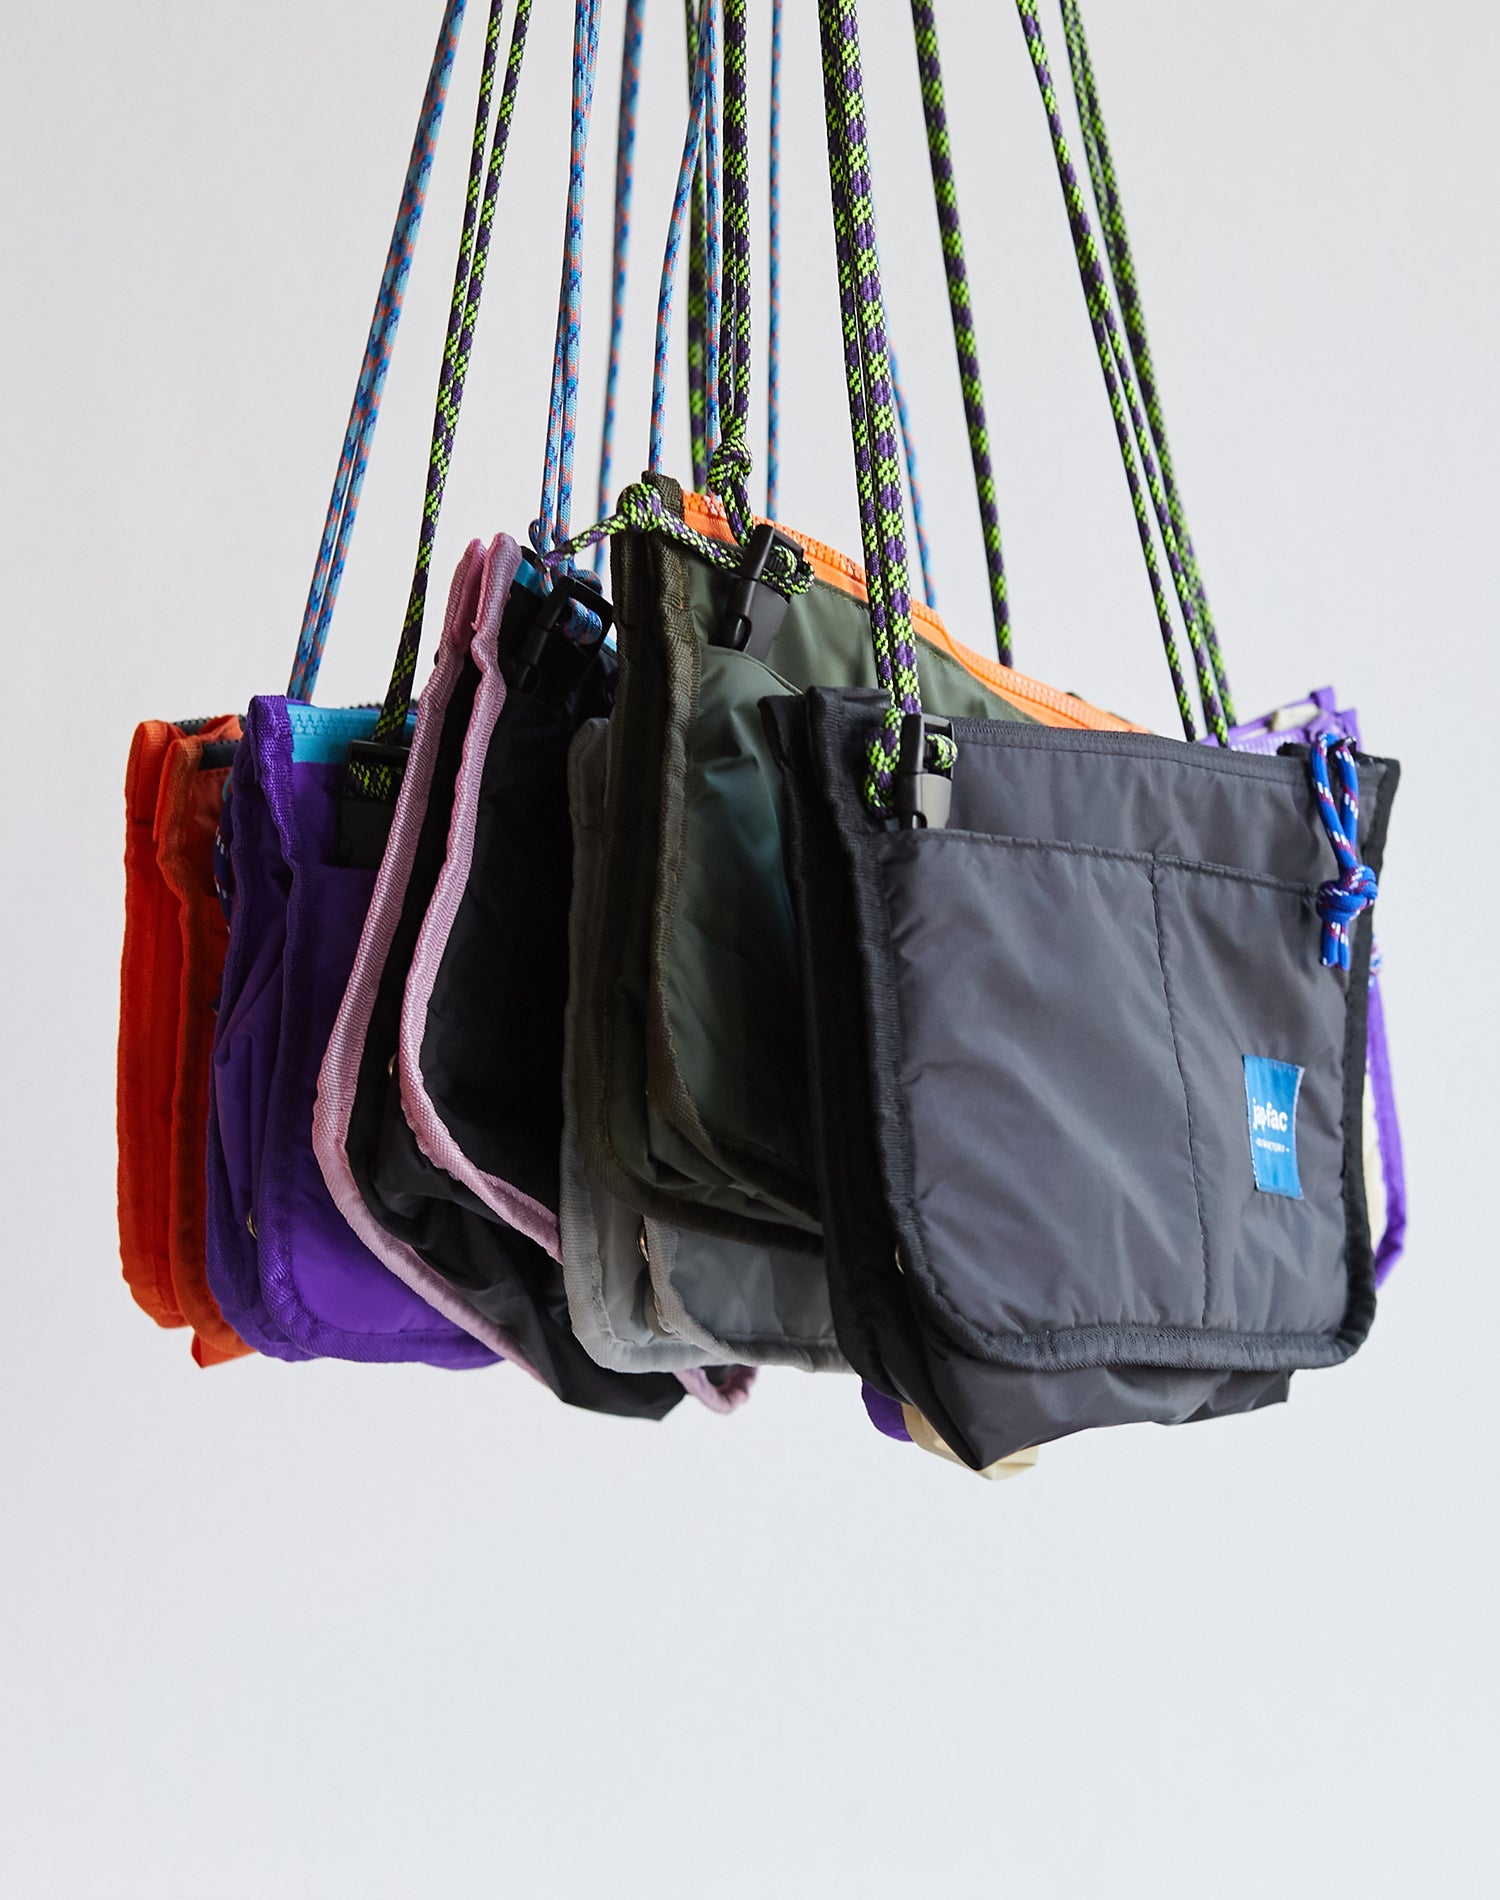 Purple Candy Waterproof Nylon Shoulder Bag.紫色防水尼龍單肩斜挎袋